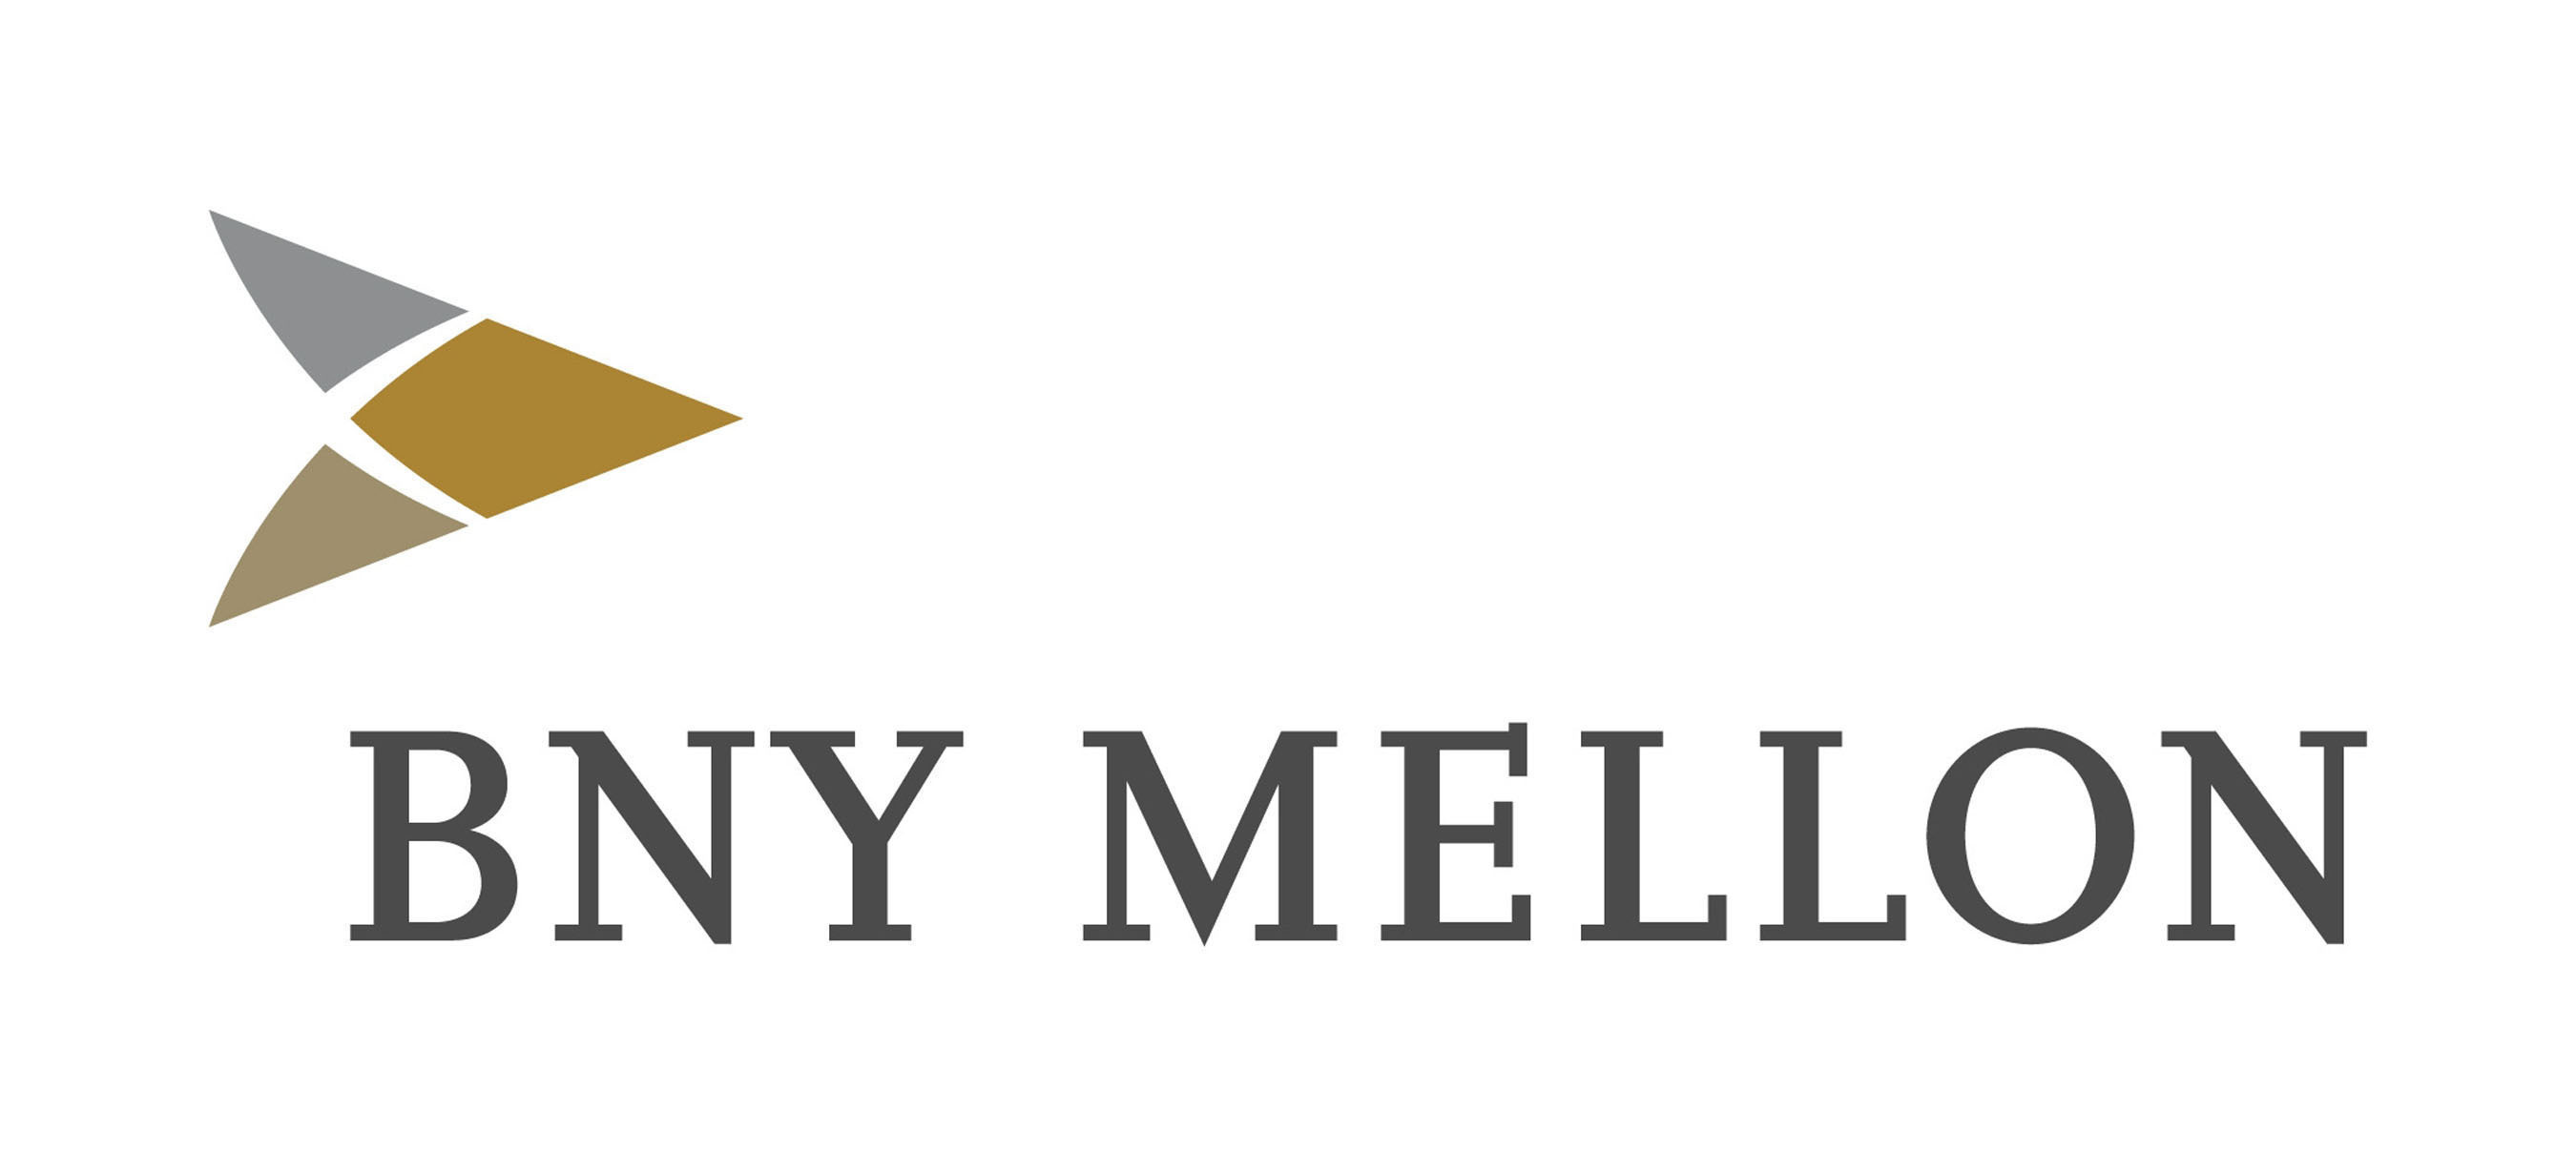 BNY Mellon Treasury Services' Digital Strategy Addresses the Evolving Needs of Clients and Offers a Road-Map for Their Future Success